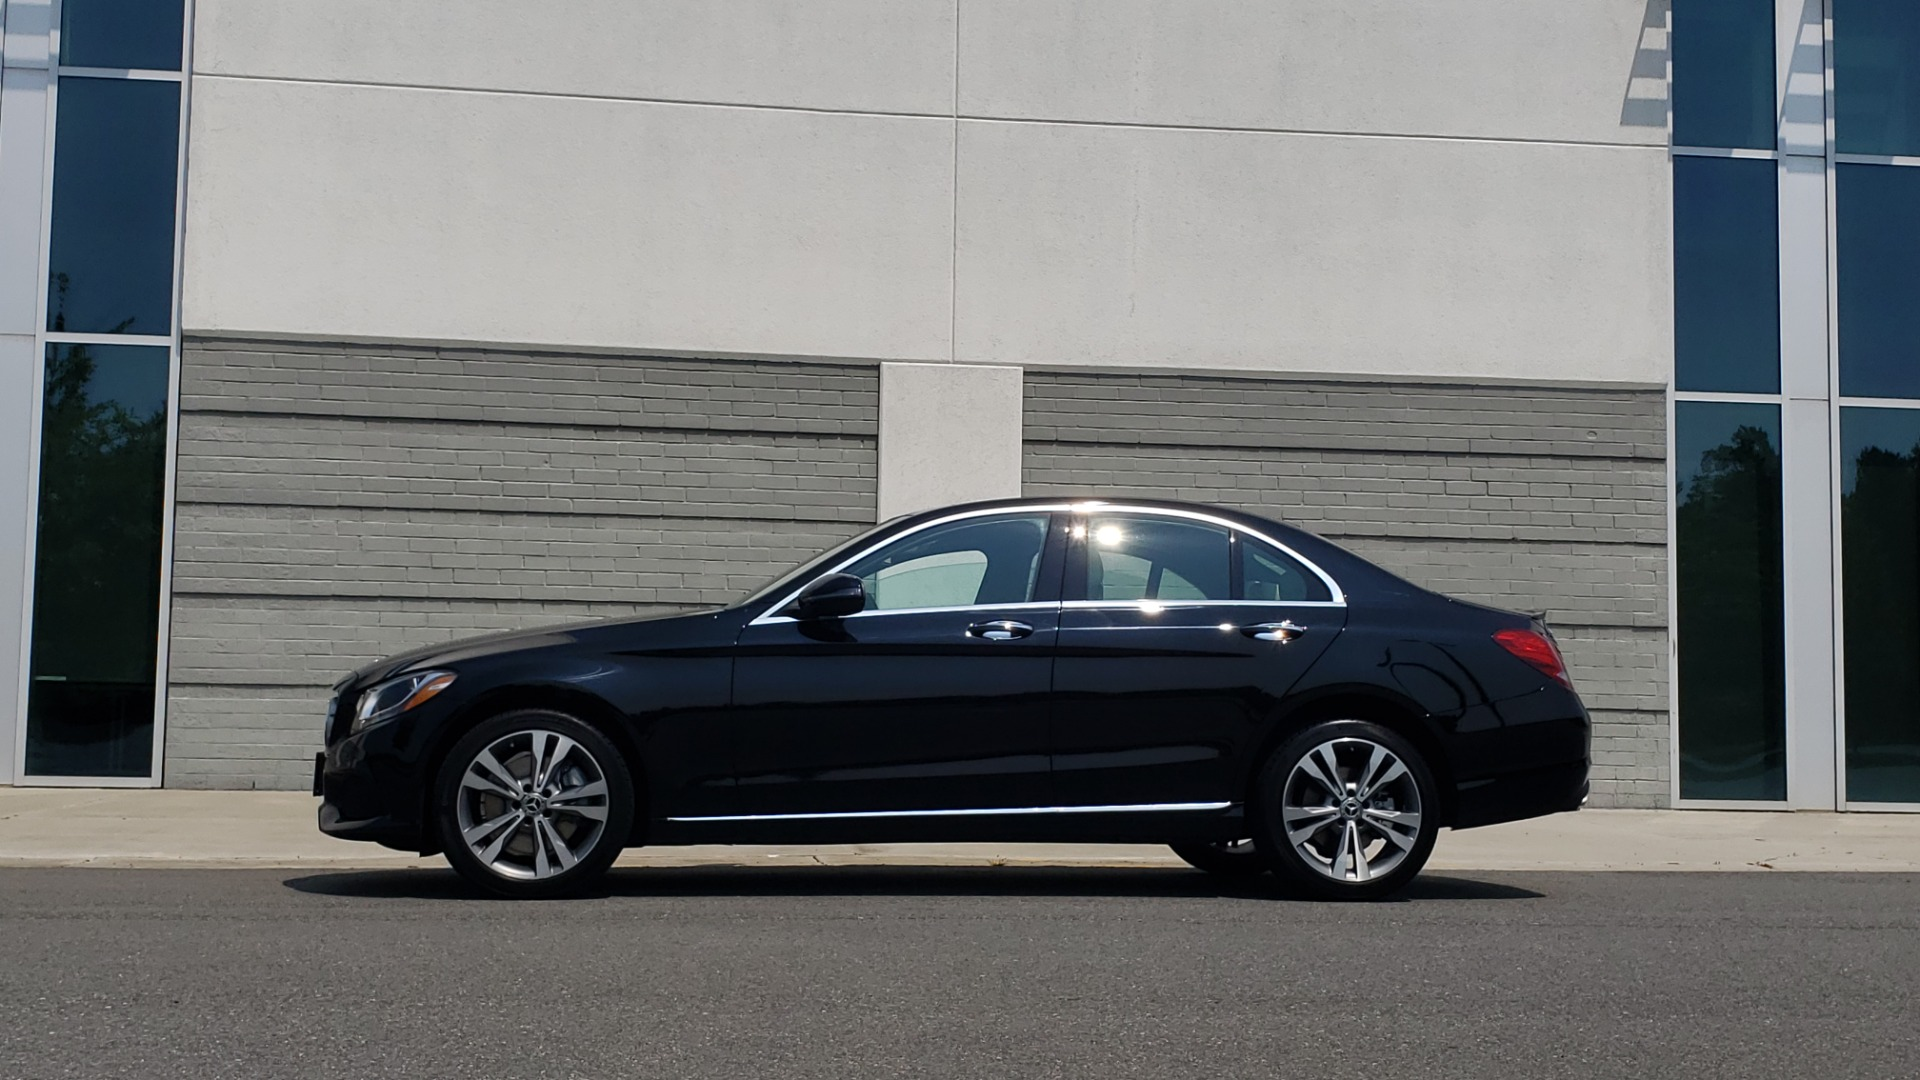 Used 2018 Mercedes-Benz C-CLASS C 300 4MATIC / PREMIUM / MULTIMEDIA / NAV / PANO-ROOF / BURMESTER for sale $30,495 at Formula Imports in Charlotte NC 28227 5